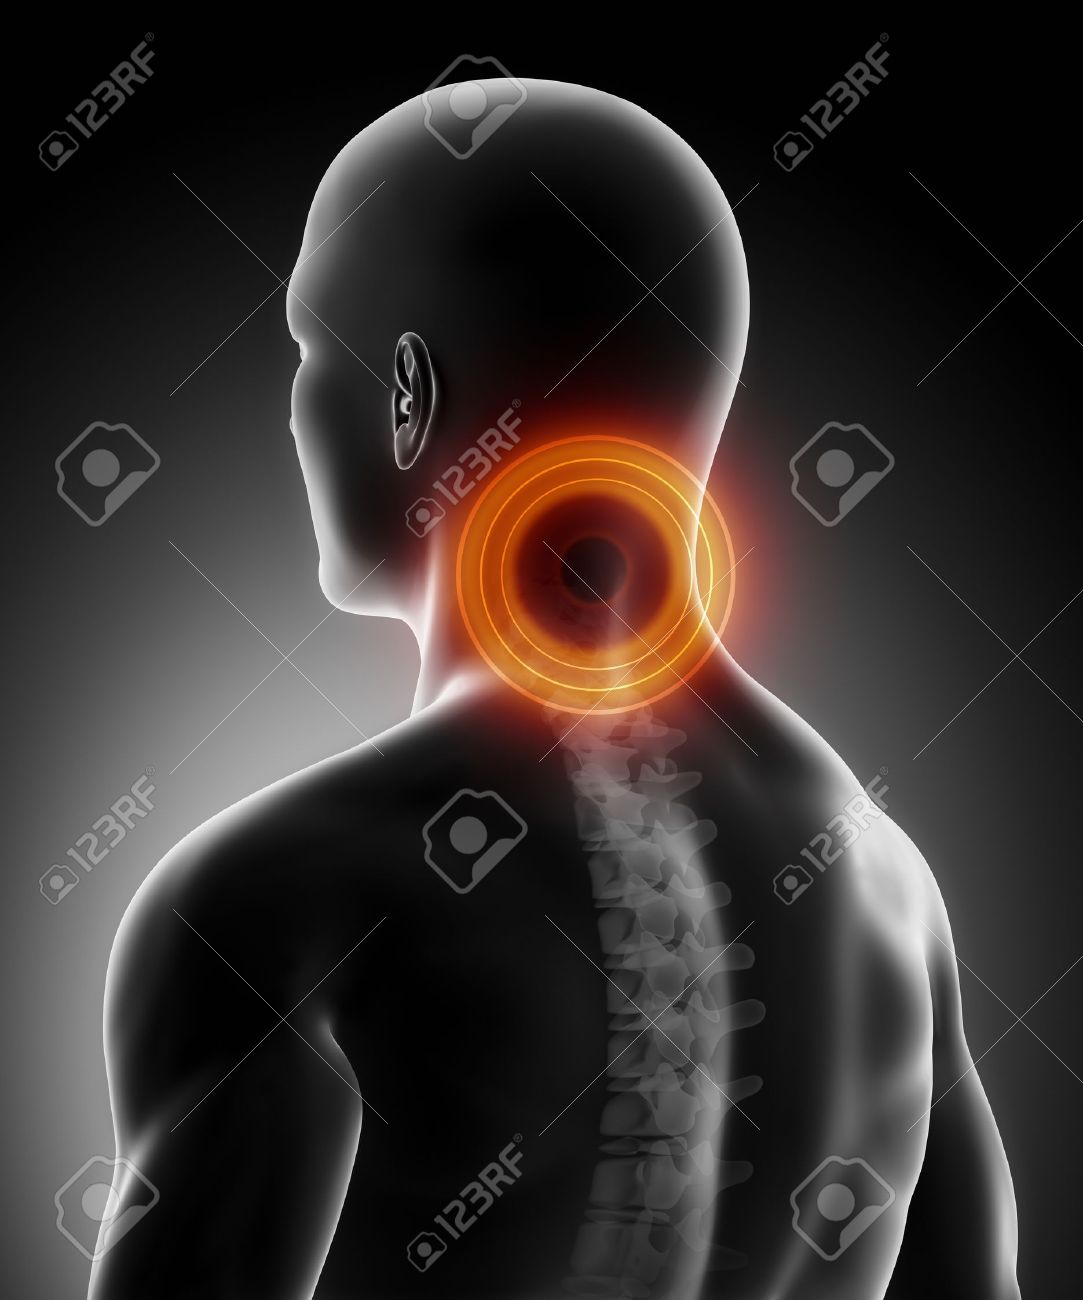 Pain In Cervical Spine Anatomy Stock Photo, Picture And Royalty Free ...